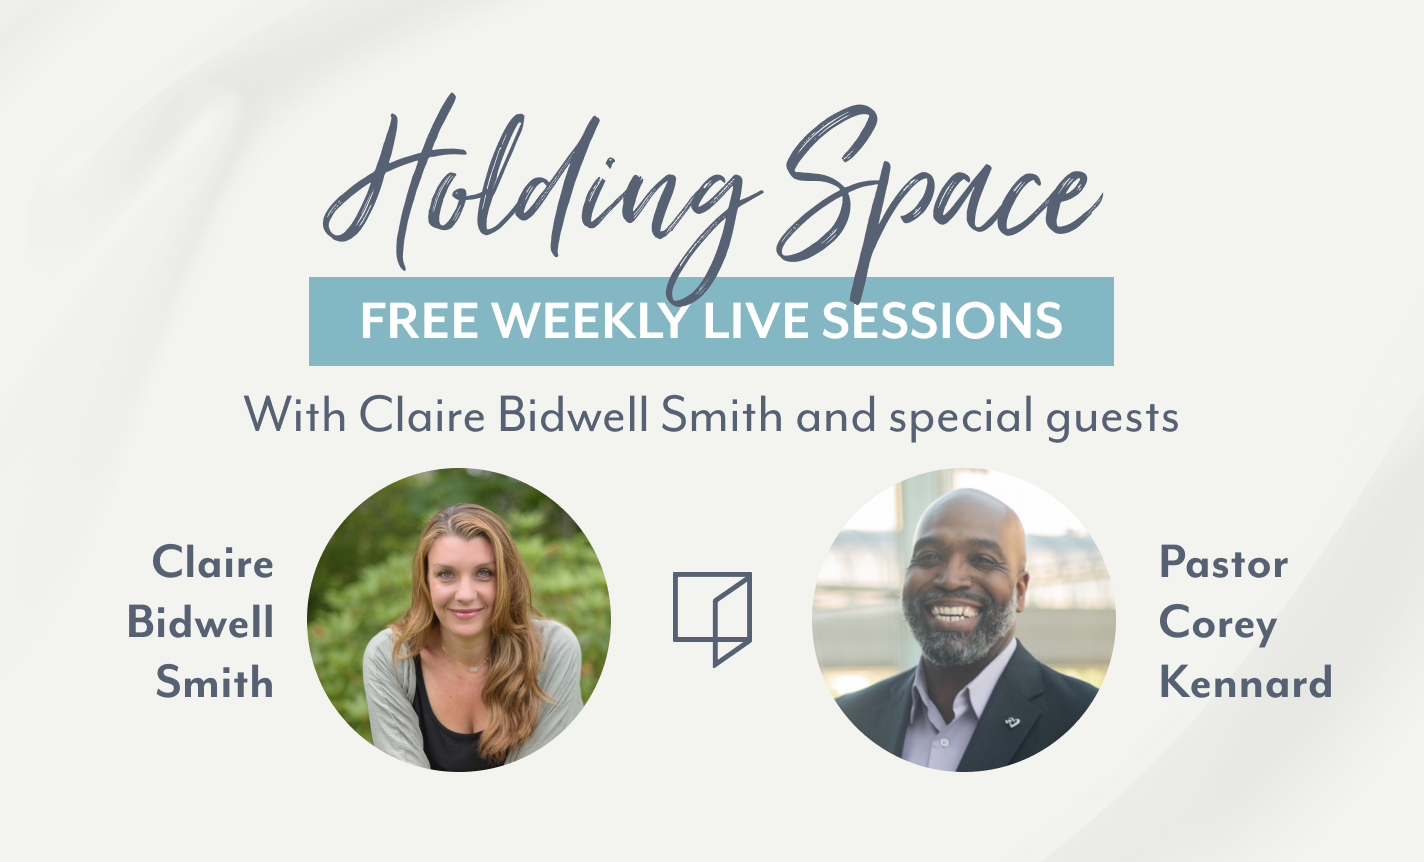 Holding Space with Claire Bidwell Smith and Corey Kennard